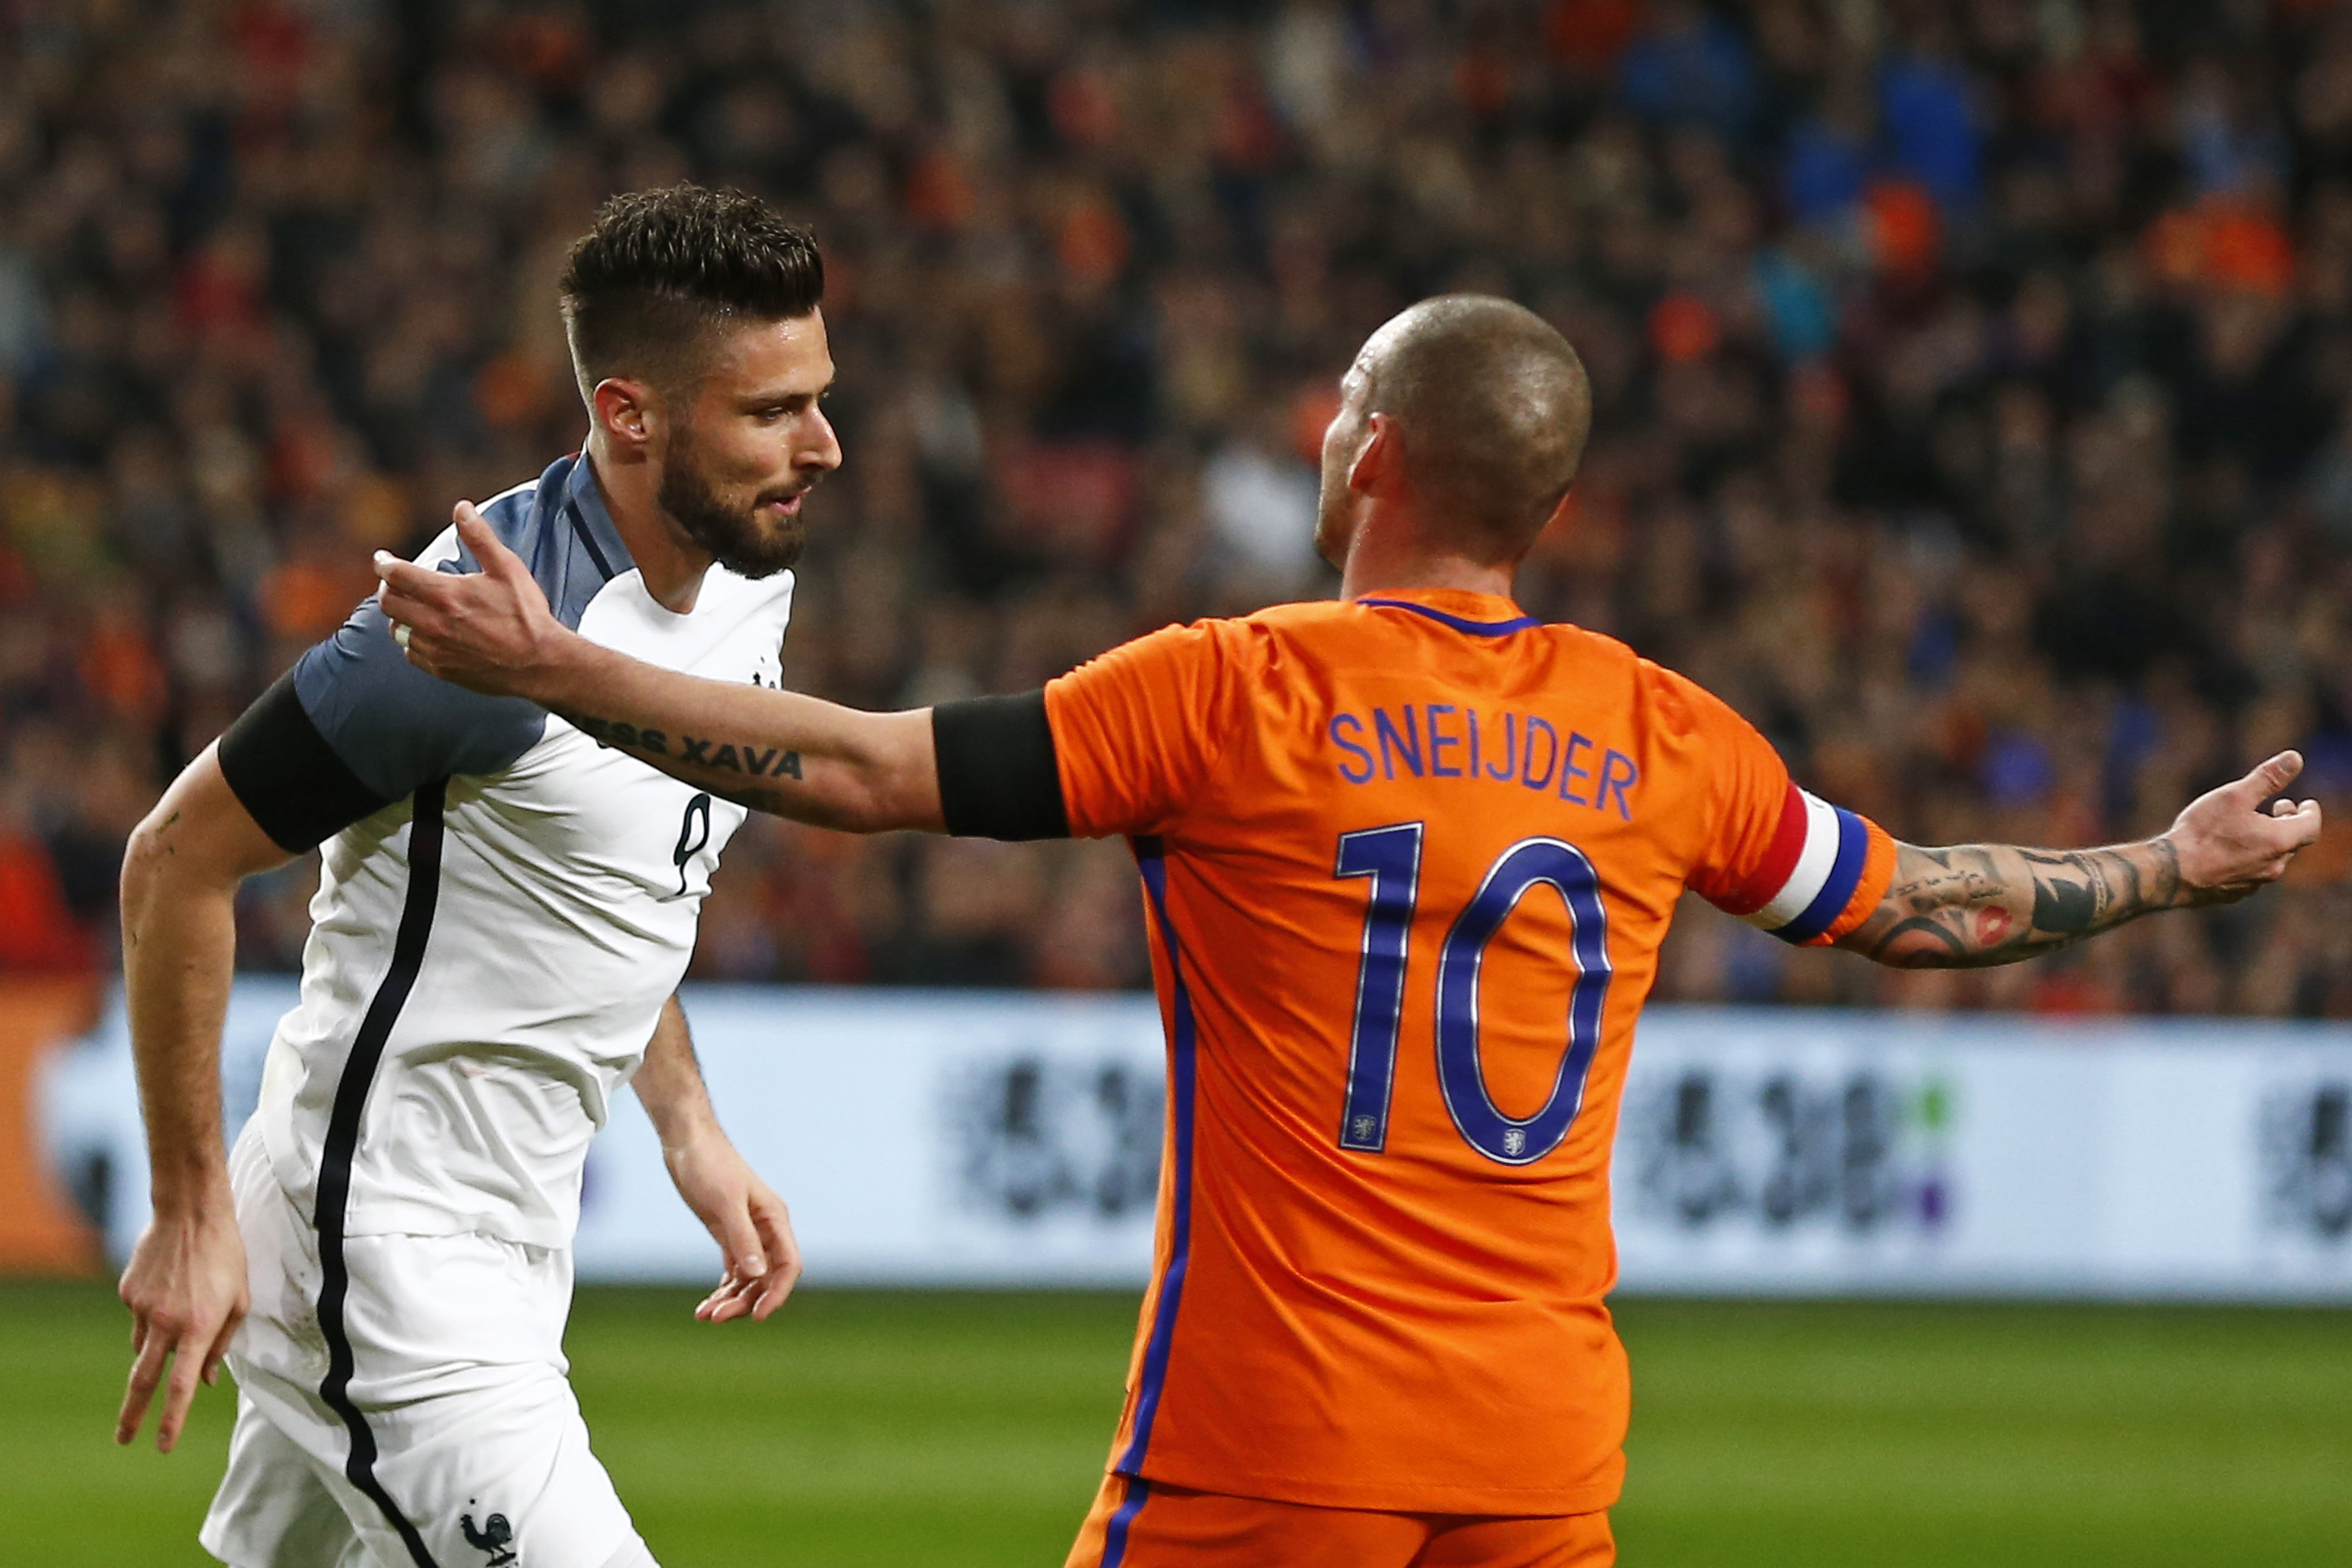 Wesley Sneijder Fined A Club Record Fee By Galatasaray SPORTbible